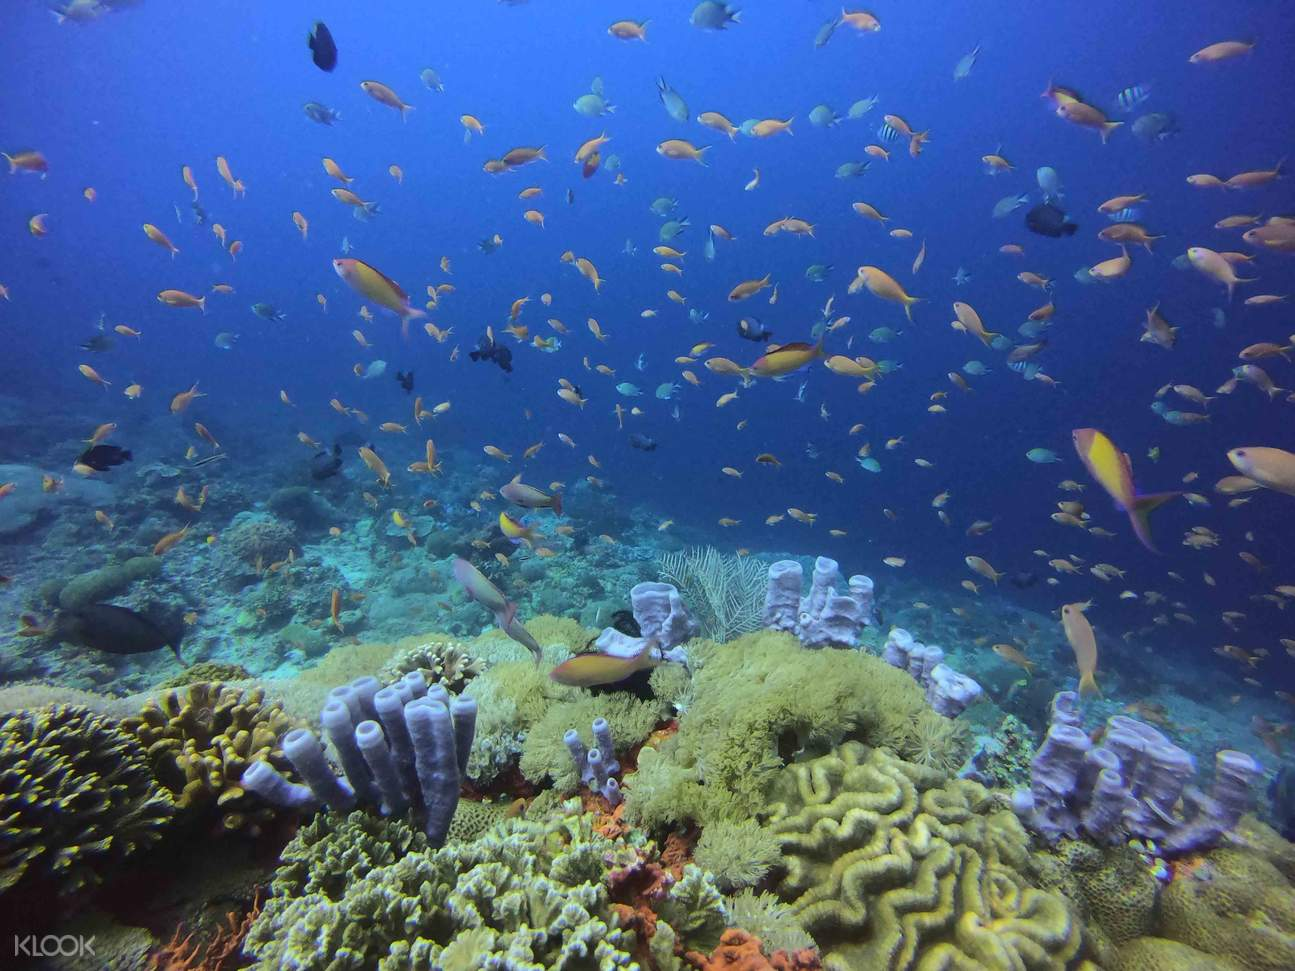 Have a chance to meet amazing corals and marine life!